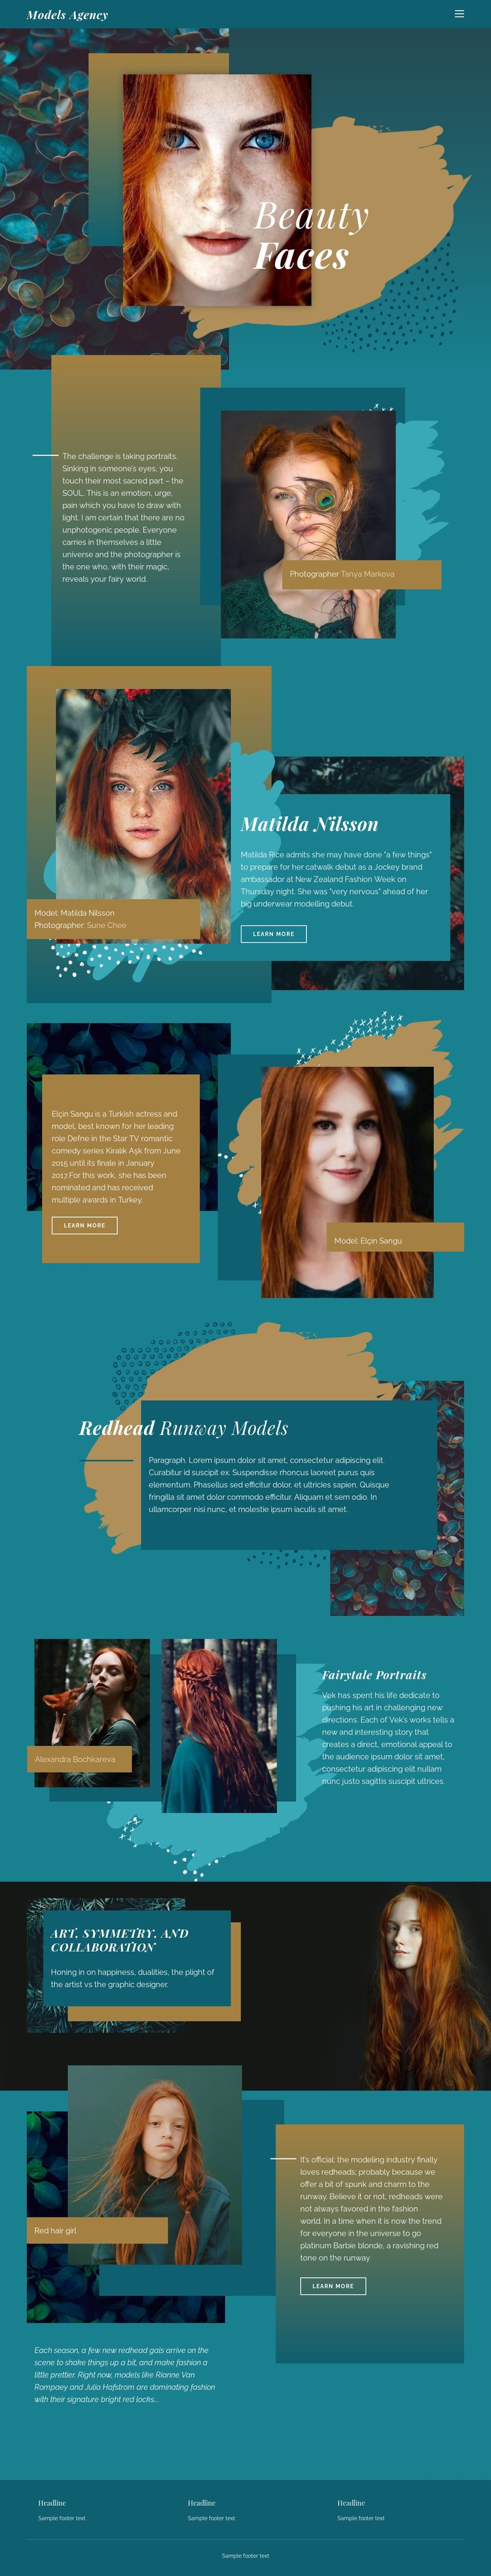 Faces of modern fashion Static Site Generator